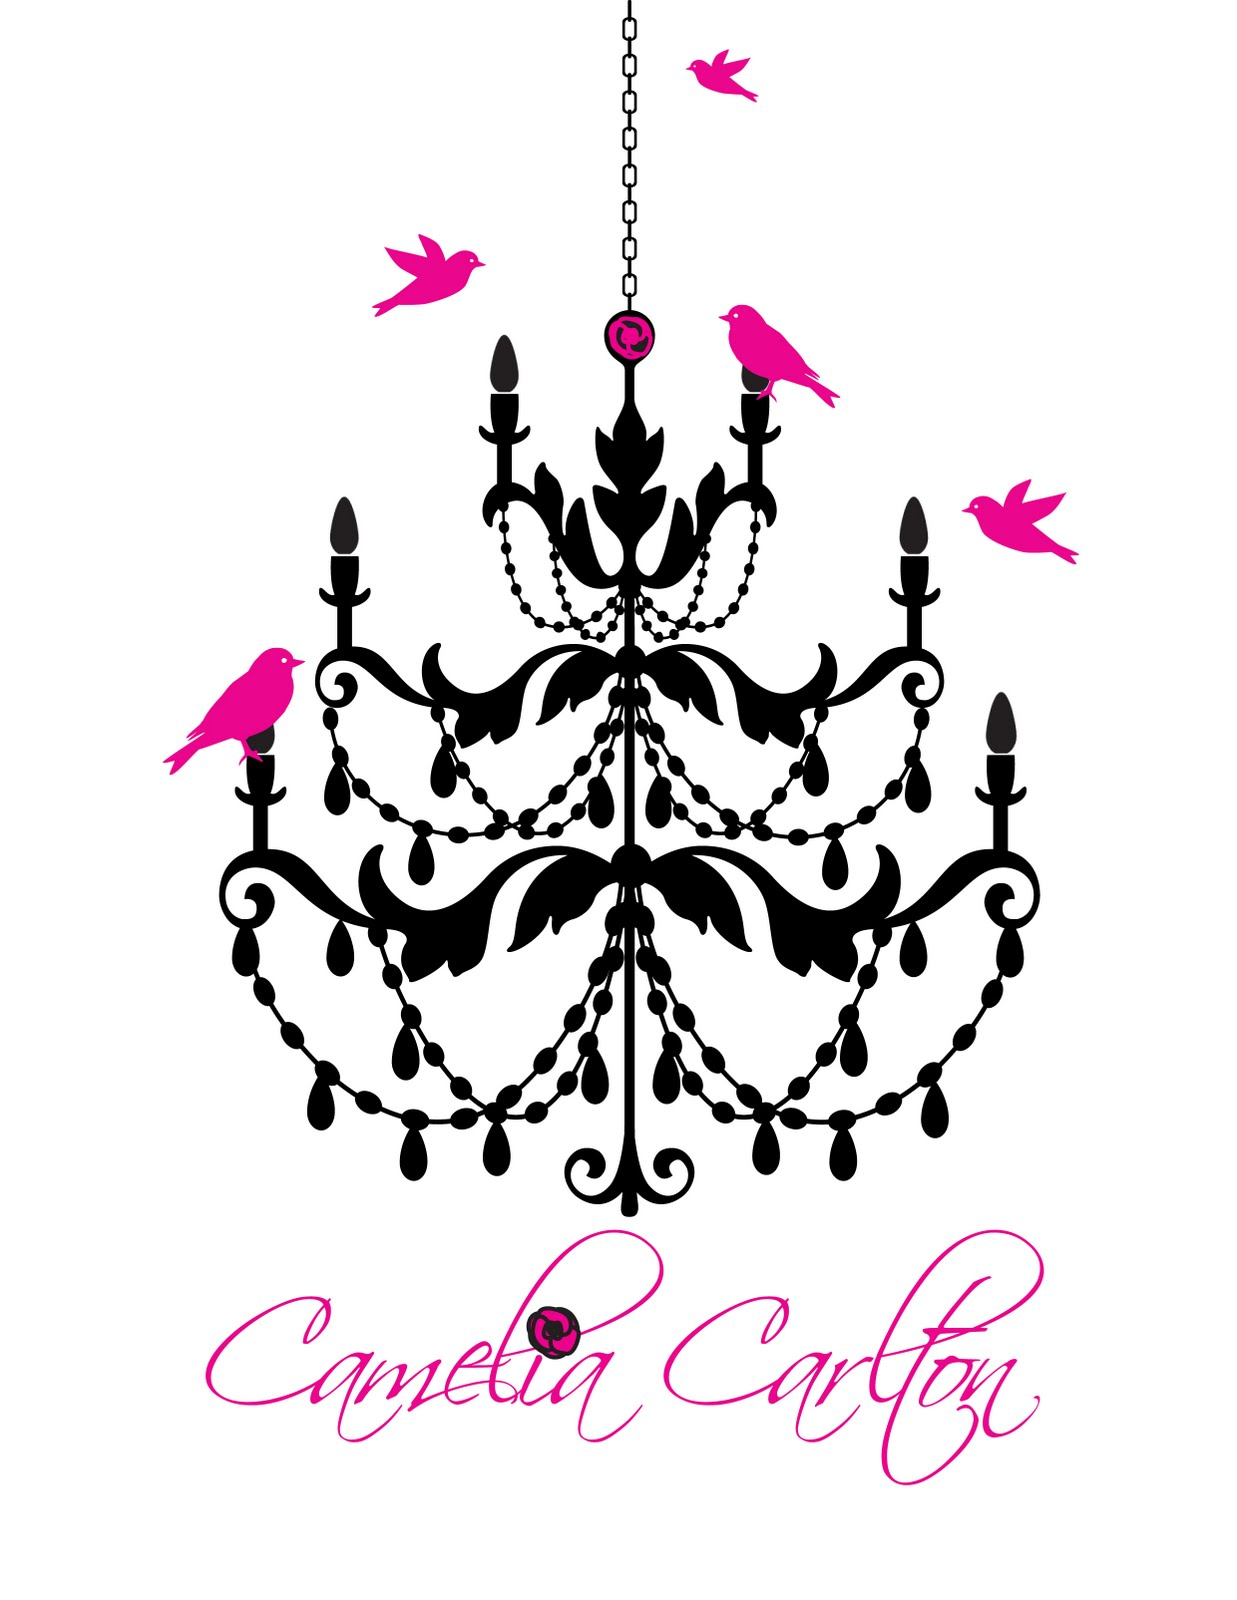 Camelia Carlton Uncut The Camelia Carlton Logo is HERE